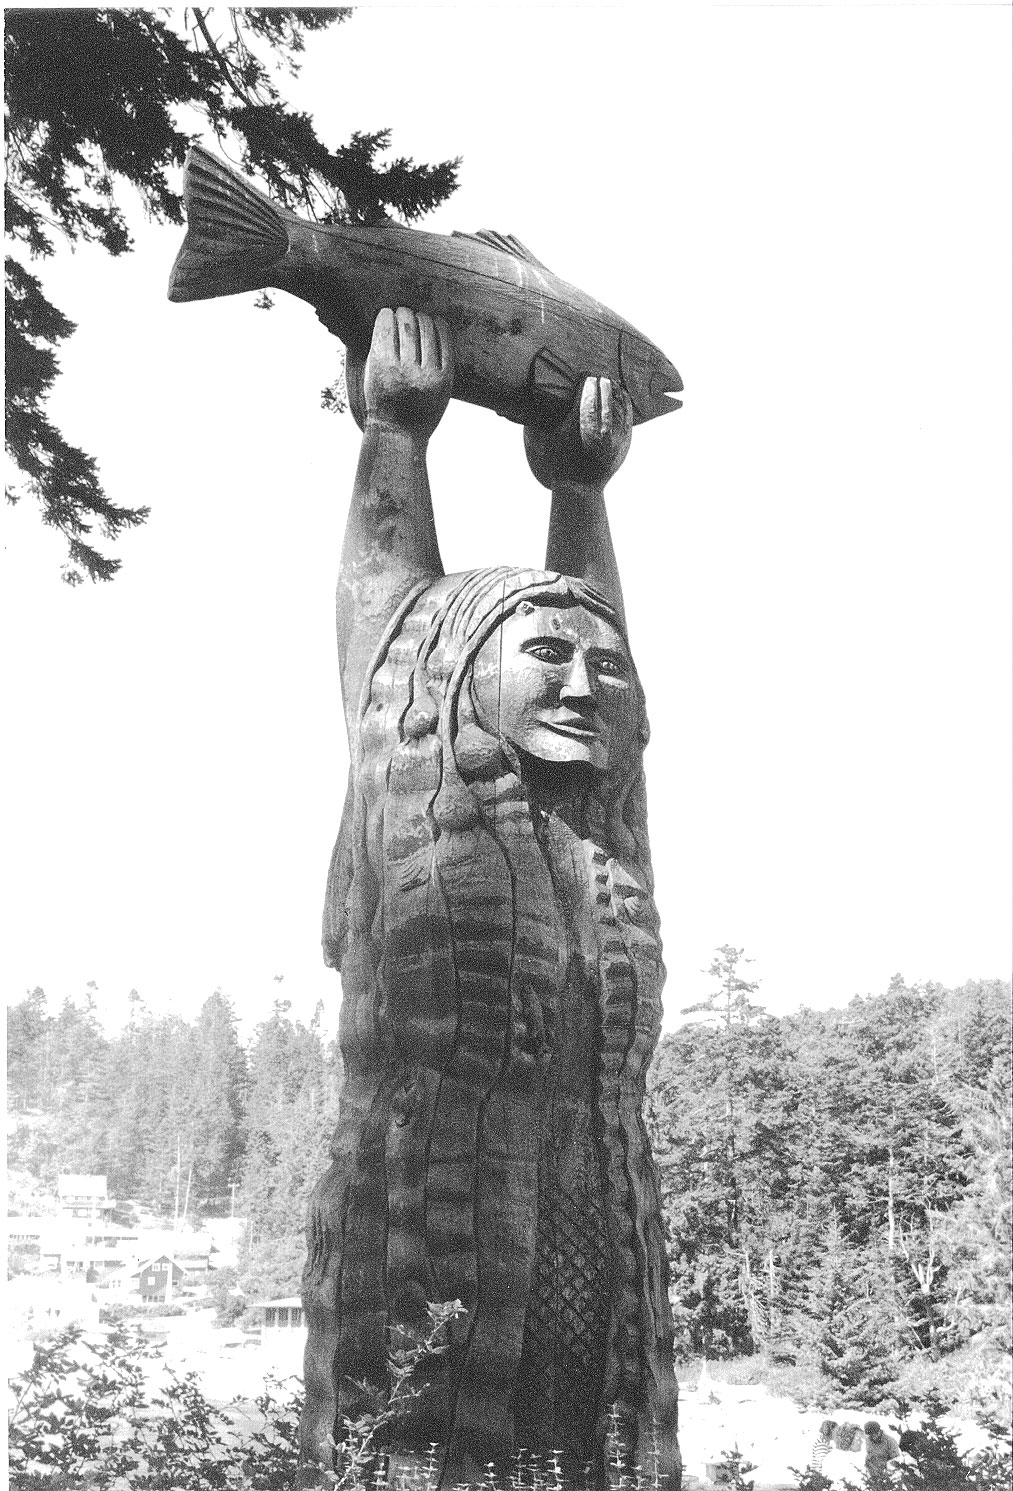 The double-sided story pole of Ko-Kwal-Alwoot, the Maiden of Deception Pass, between Bowman Bay and Sharpe Cove